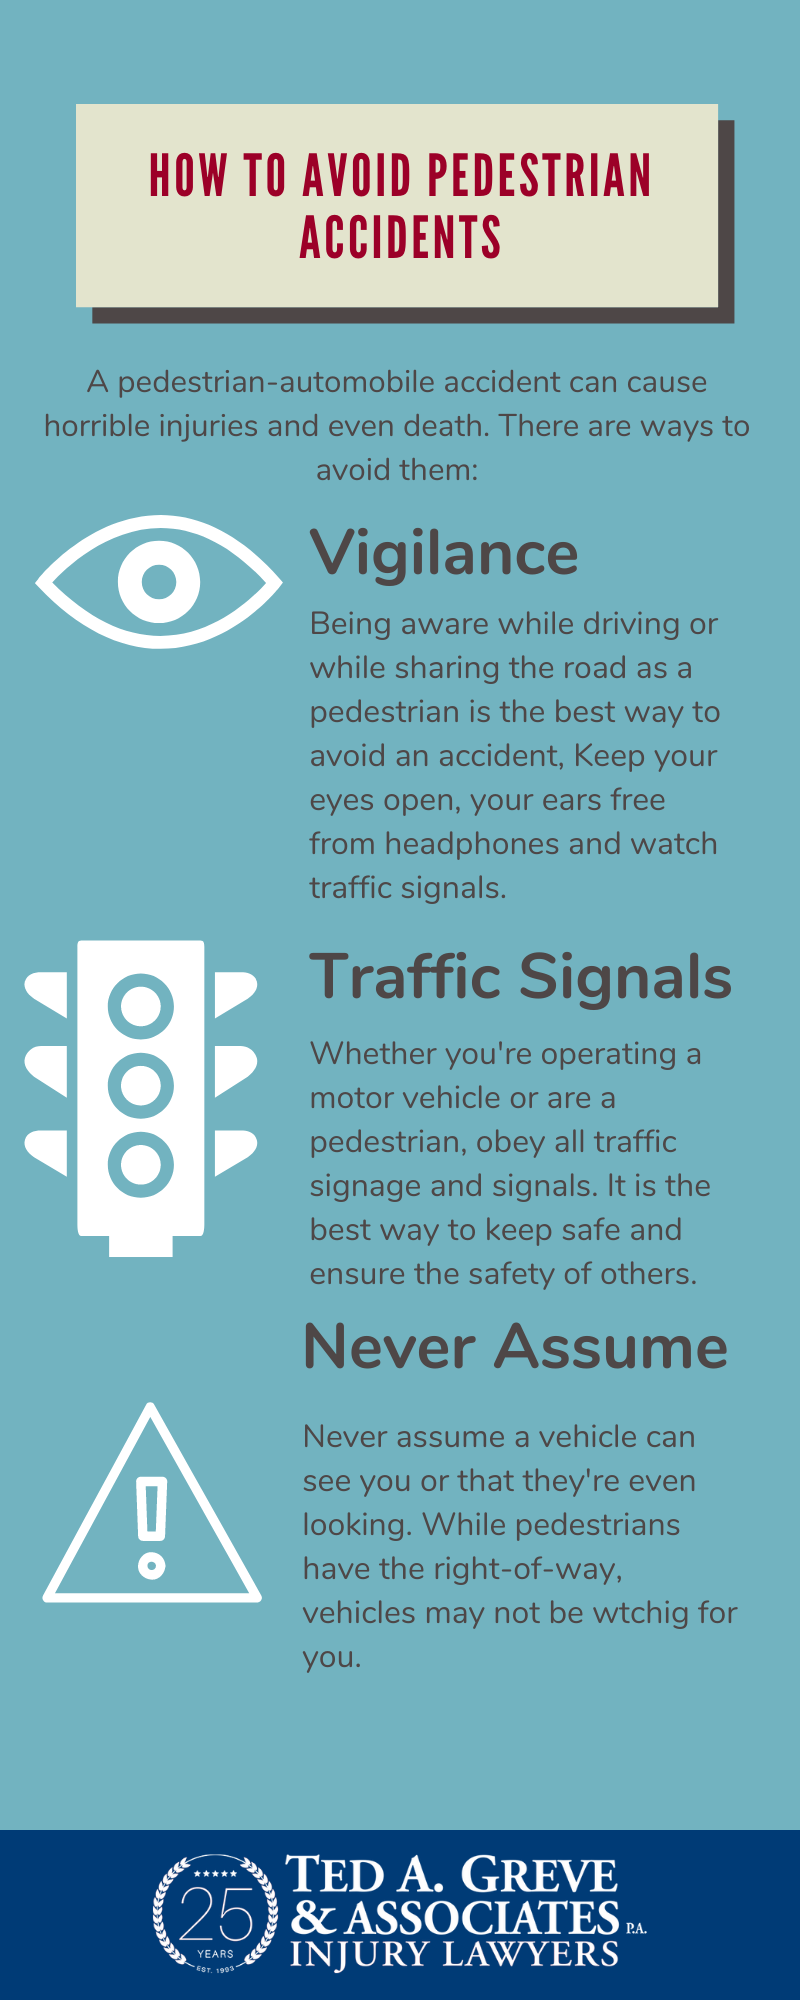 Ted Greve Charlotte Pedestrian Accident Infographic